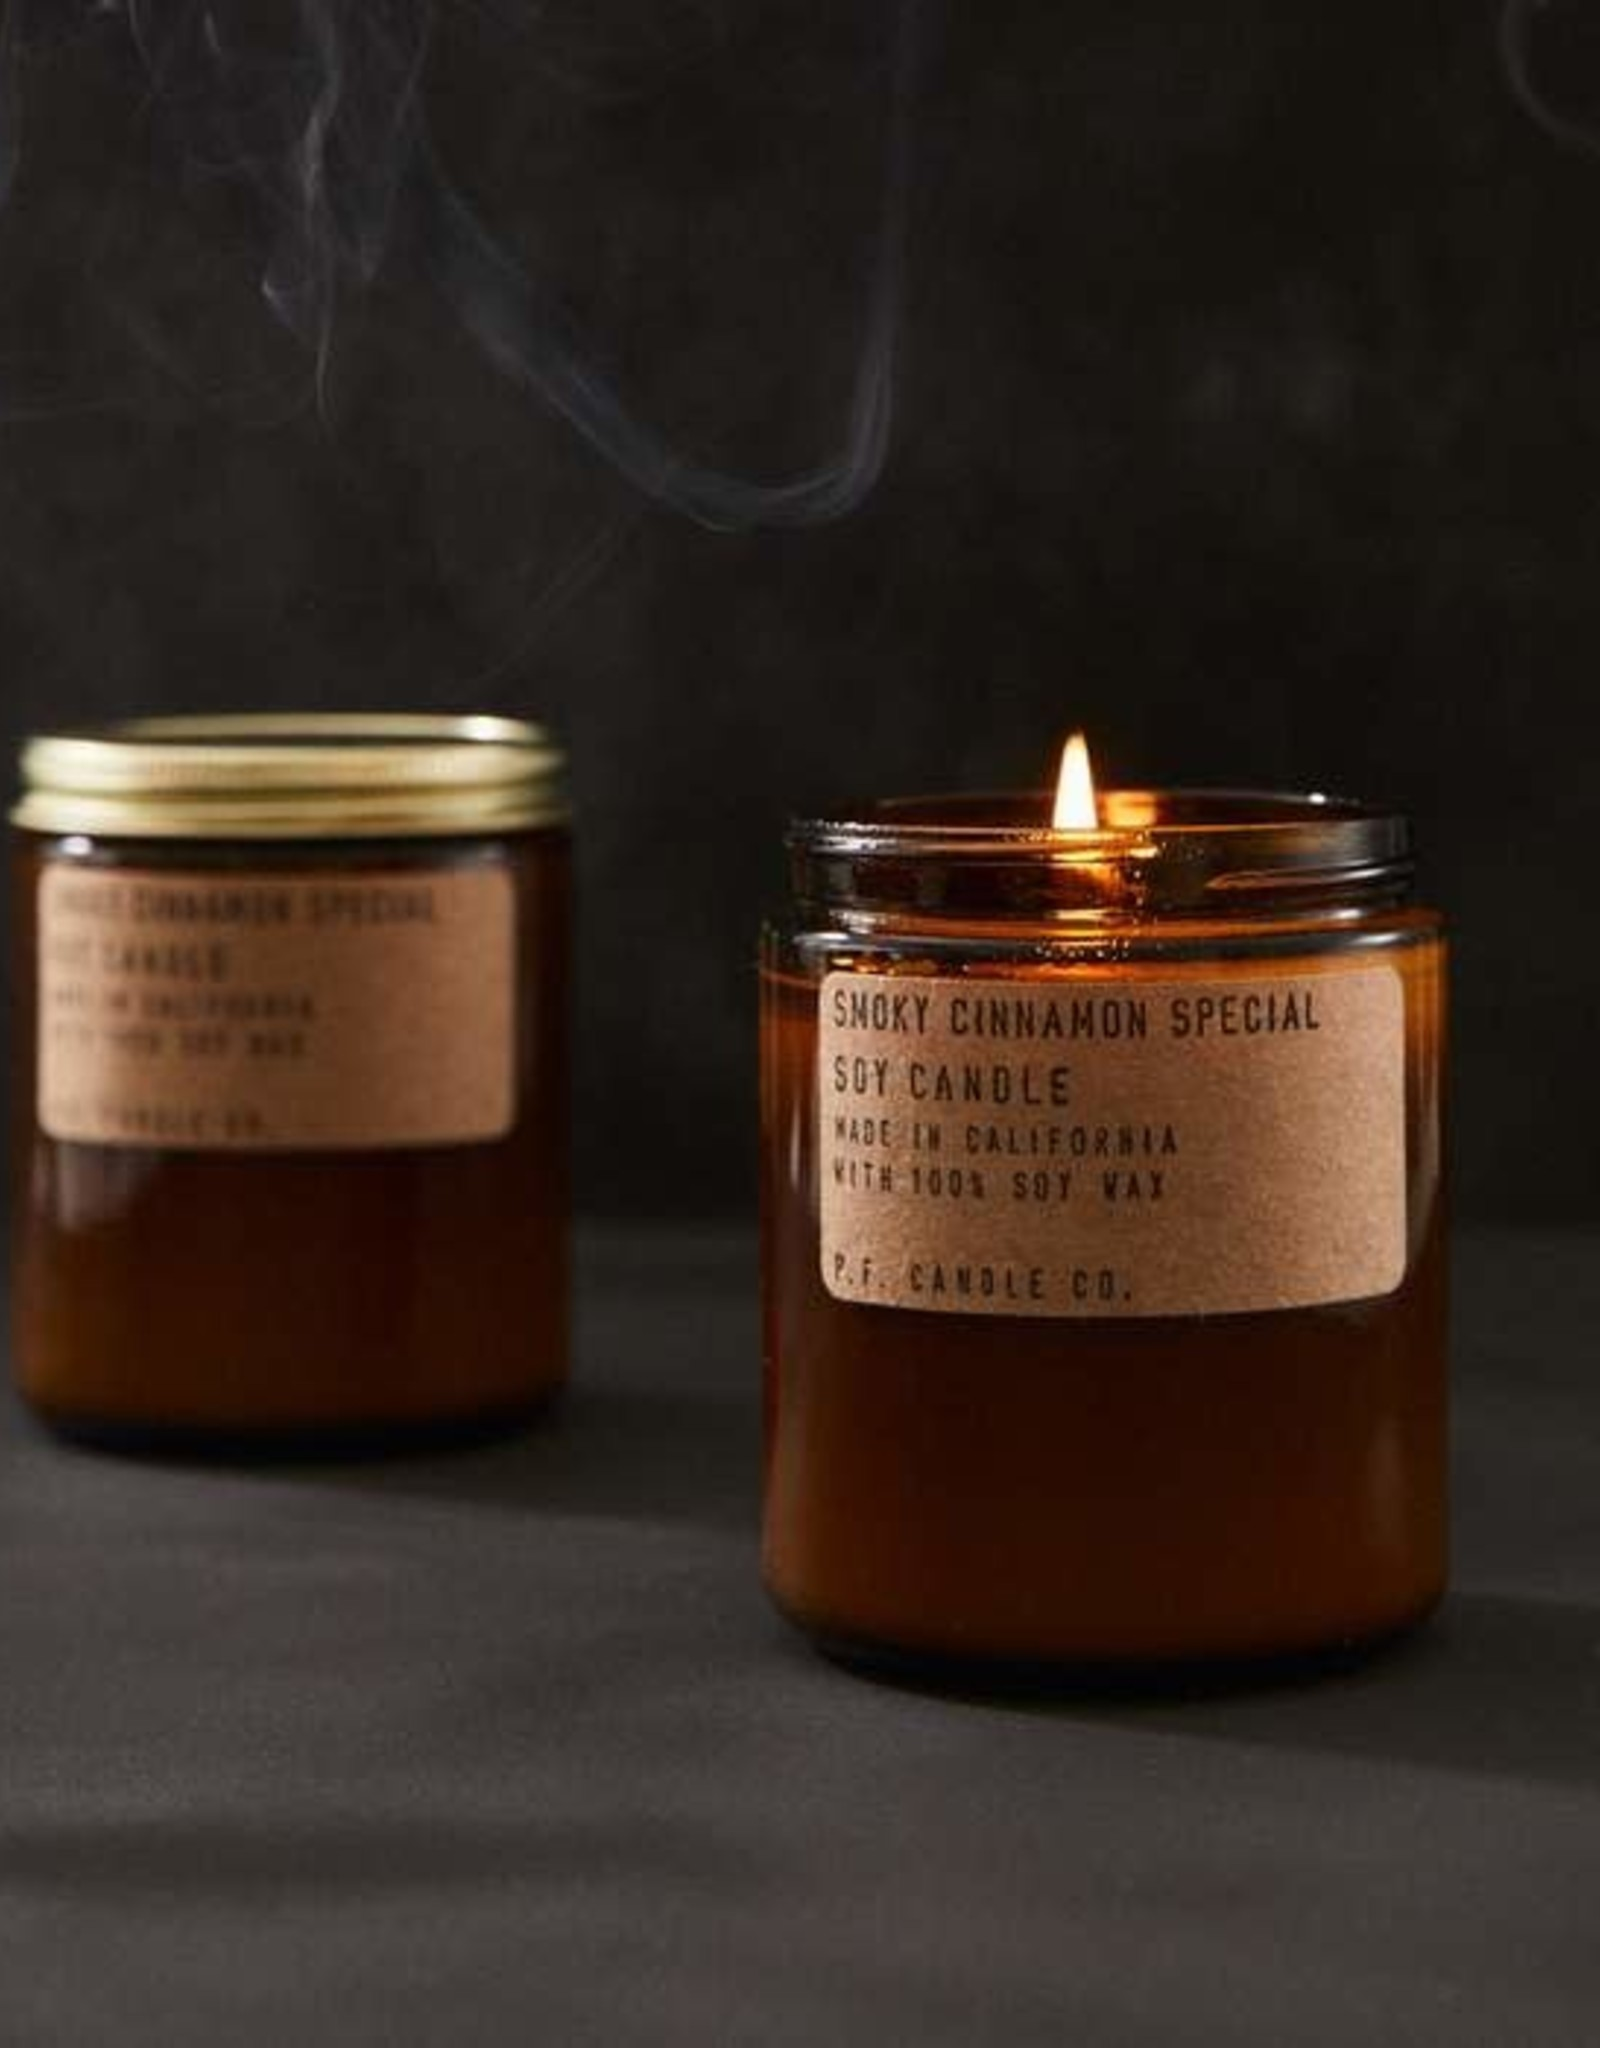 P.F. Candle Co. Smoky Cinnamon Special Soy Candle